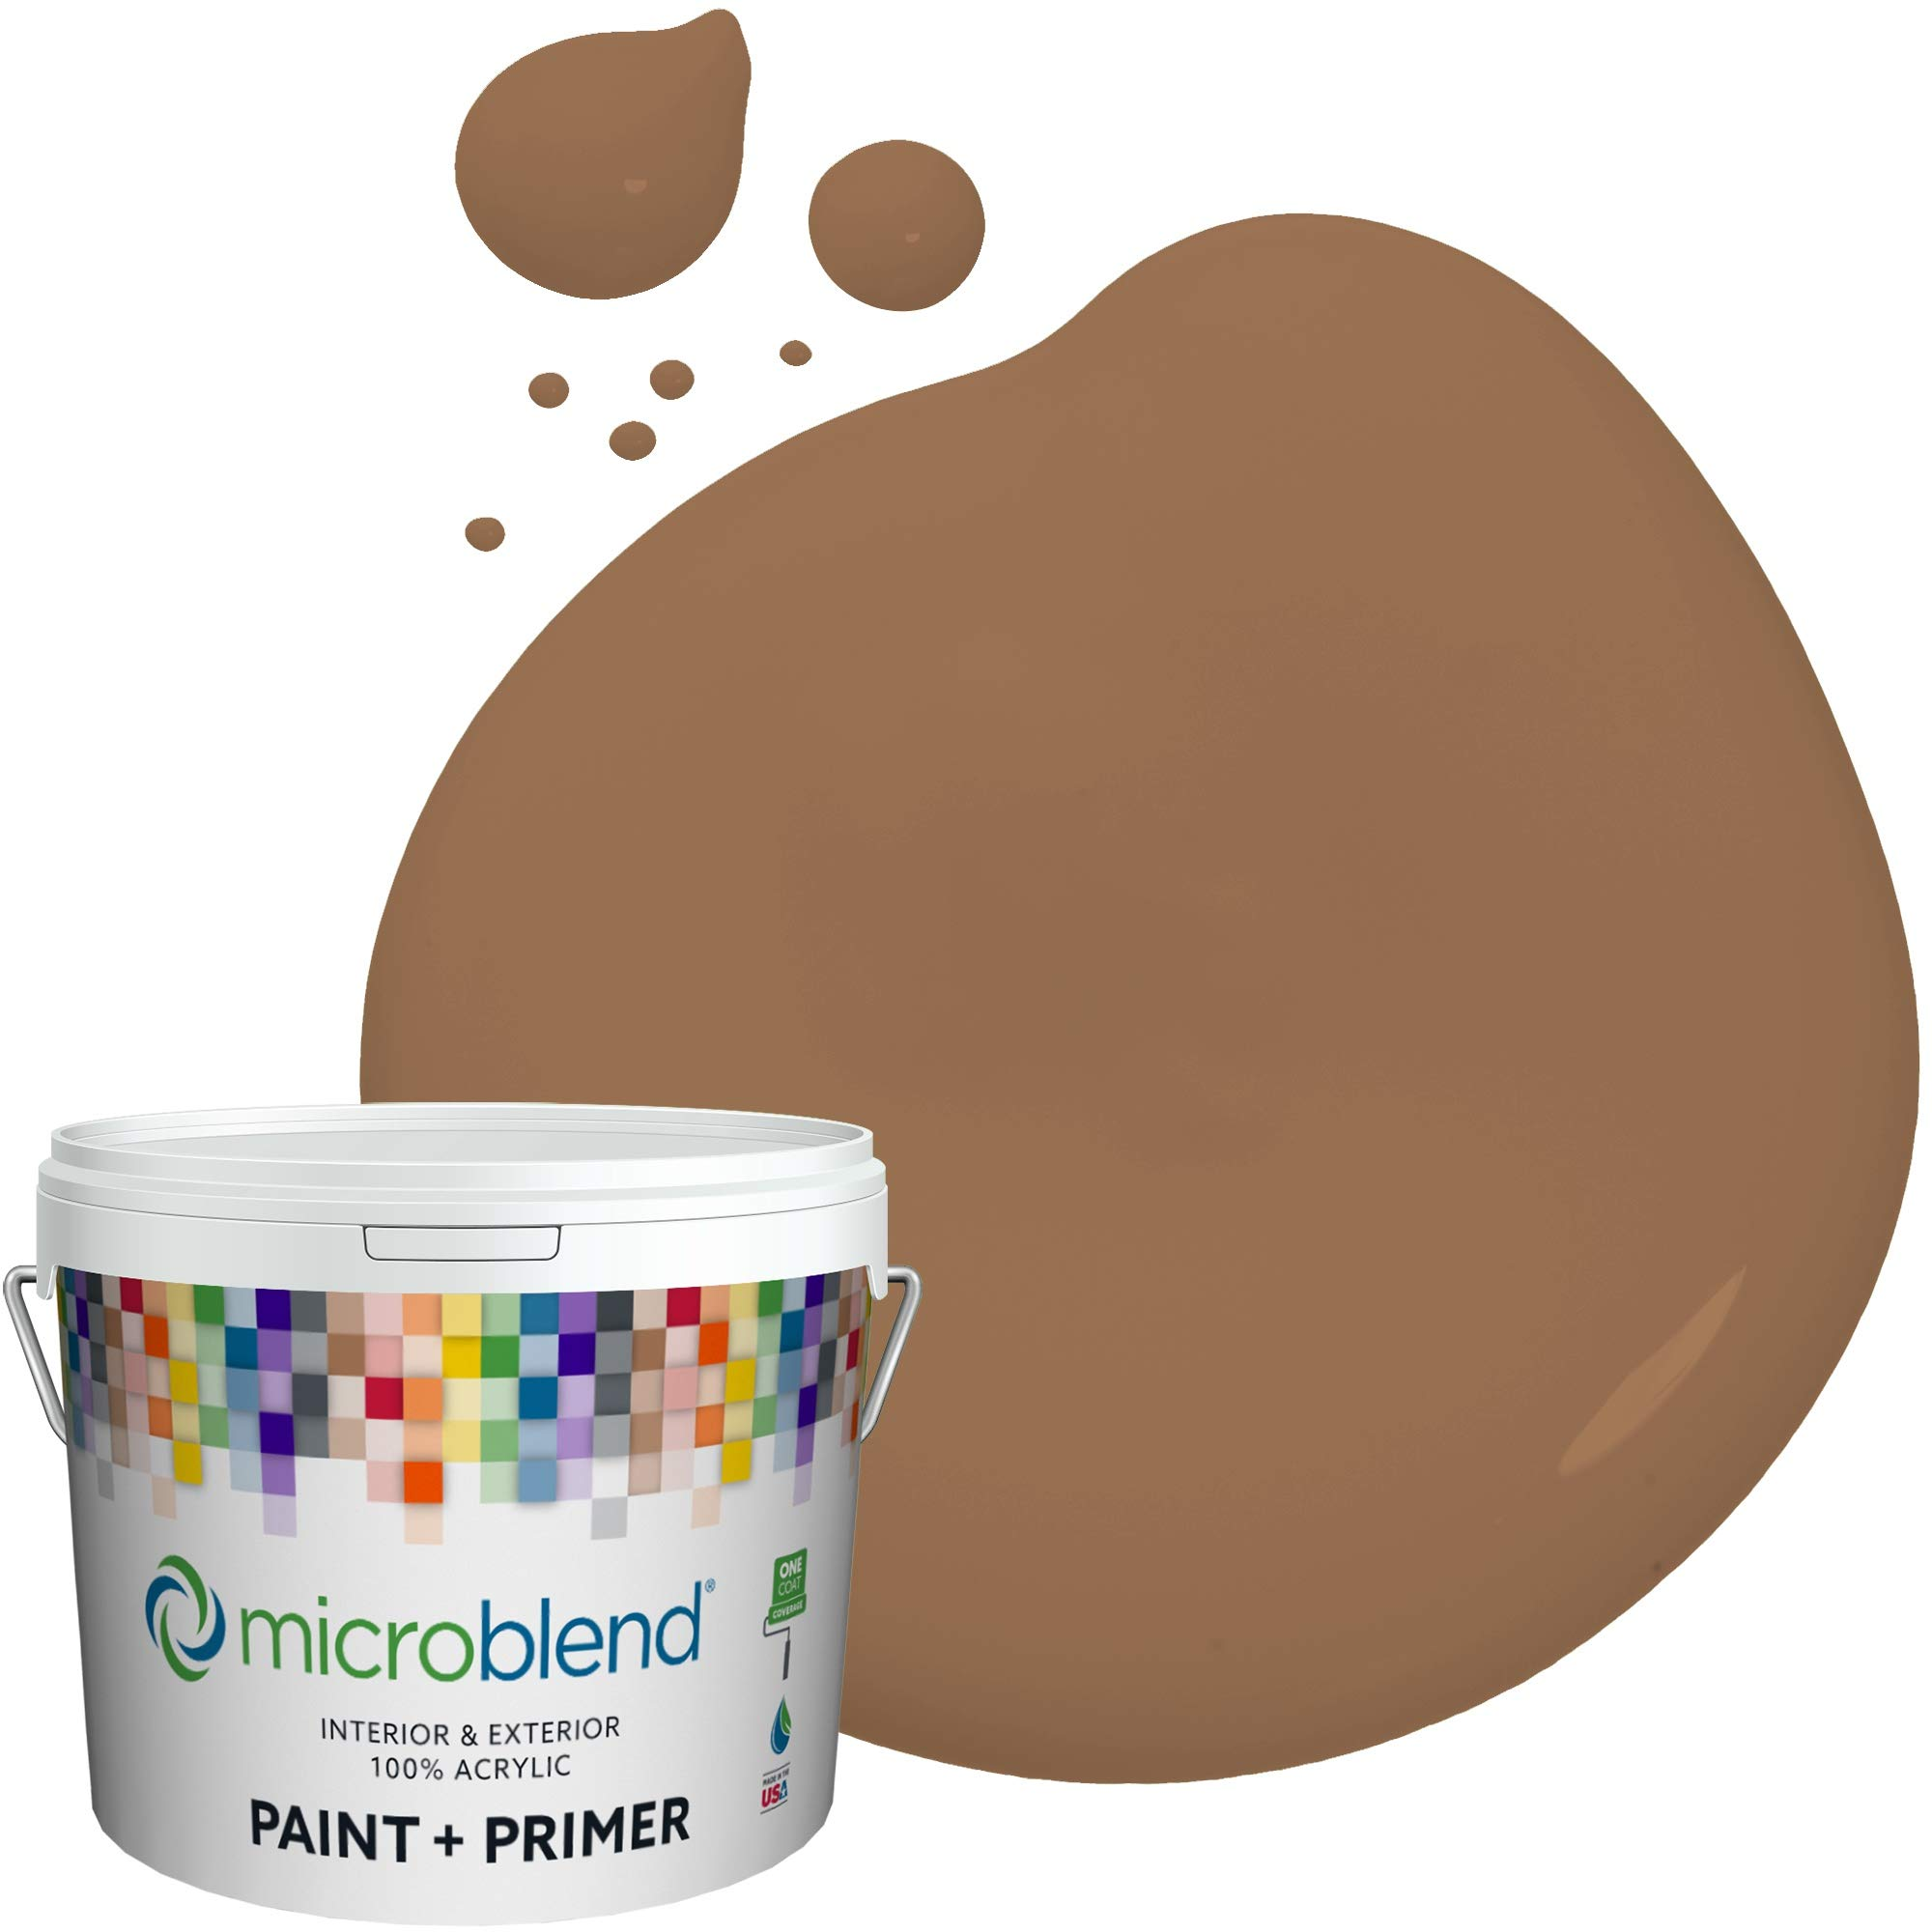 MicroBlend Interior Paint + Primer, Galleon Gold, Flat Sheen, 1 Gallon, Custom Made, Premium Quality One Coat Hide & Washable Paint